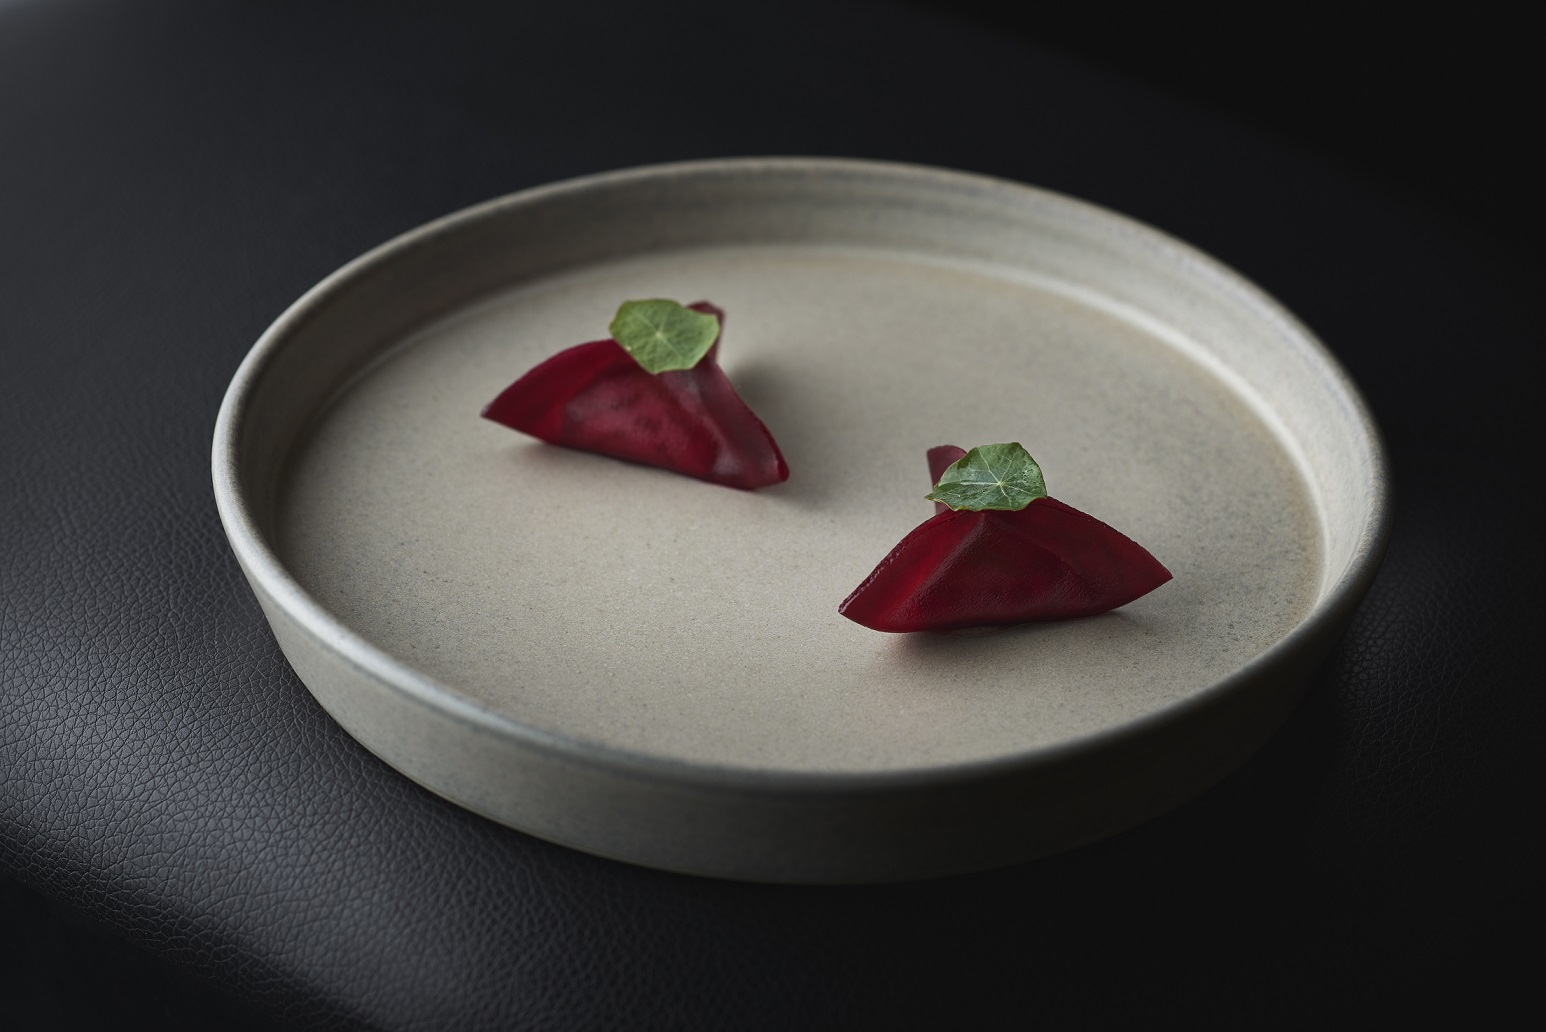 CURE's beetroot dumplings with housemade ricotta